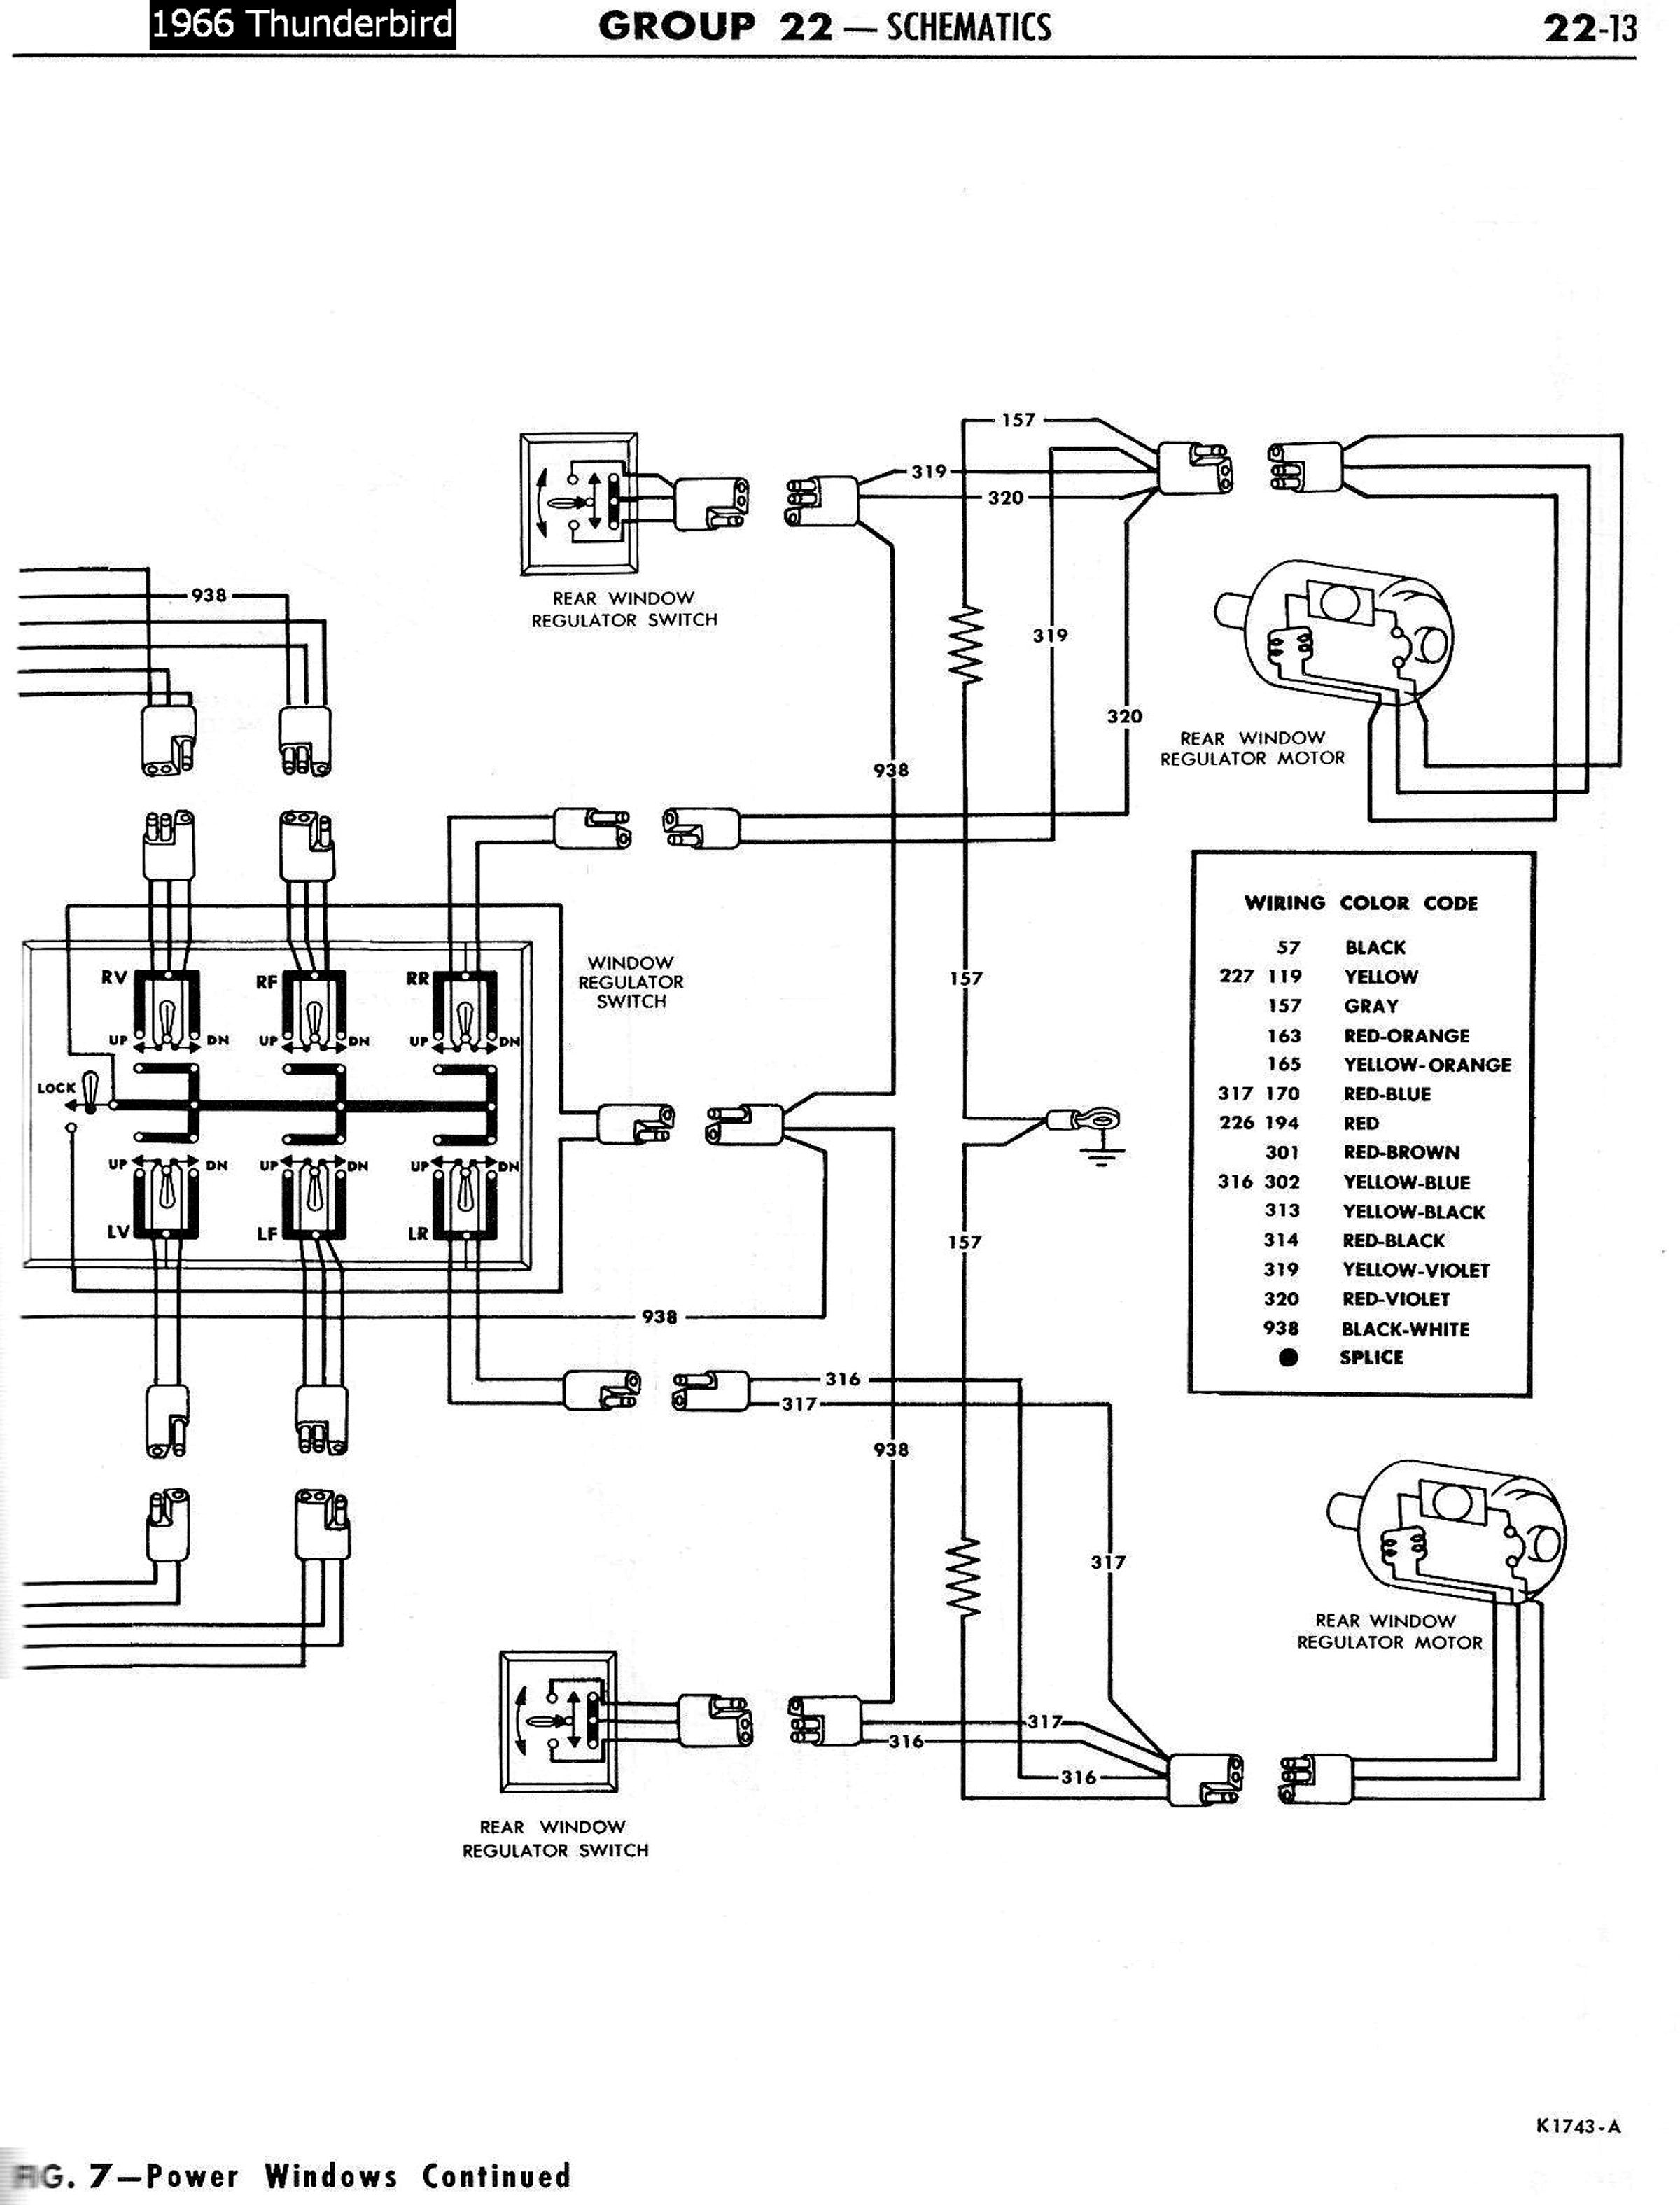 Tbirdpowerwindowsschematicright on 1968 mustang wiring diagram